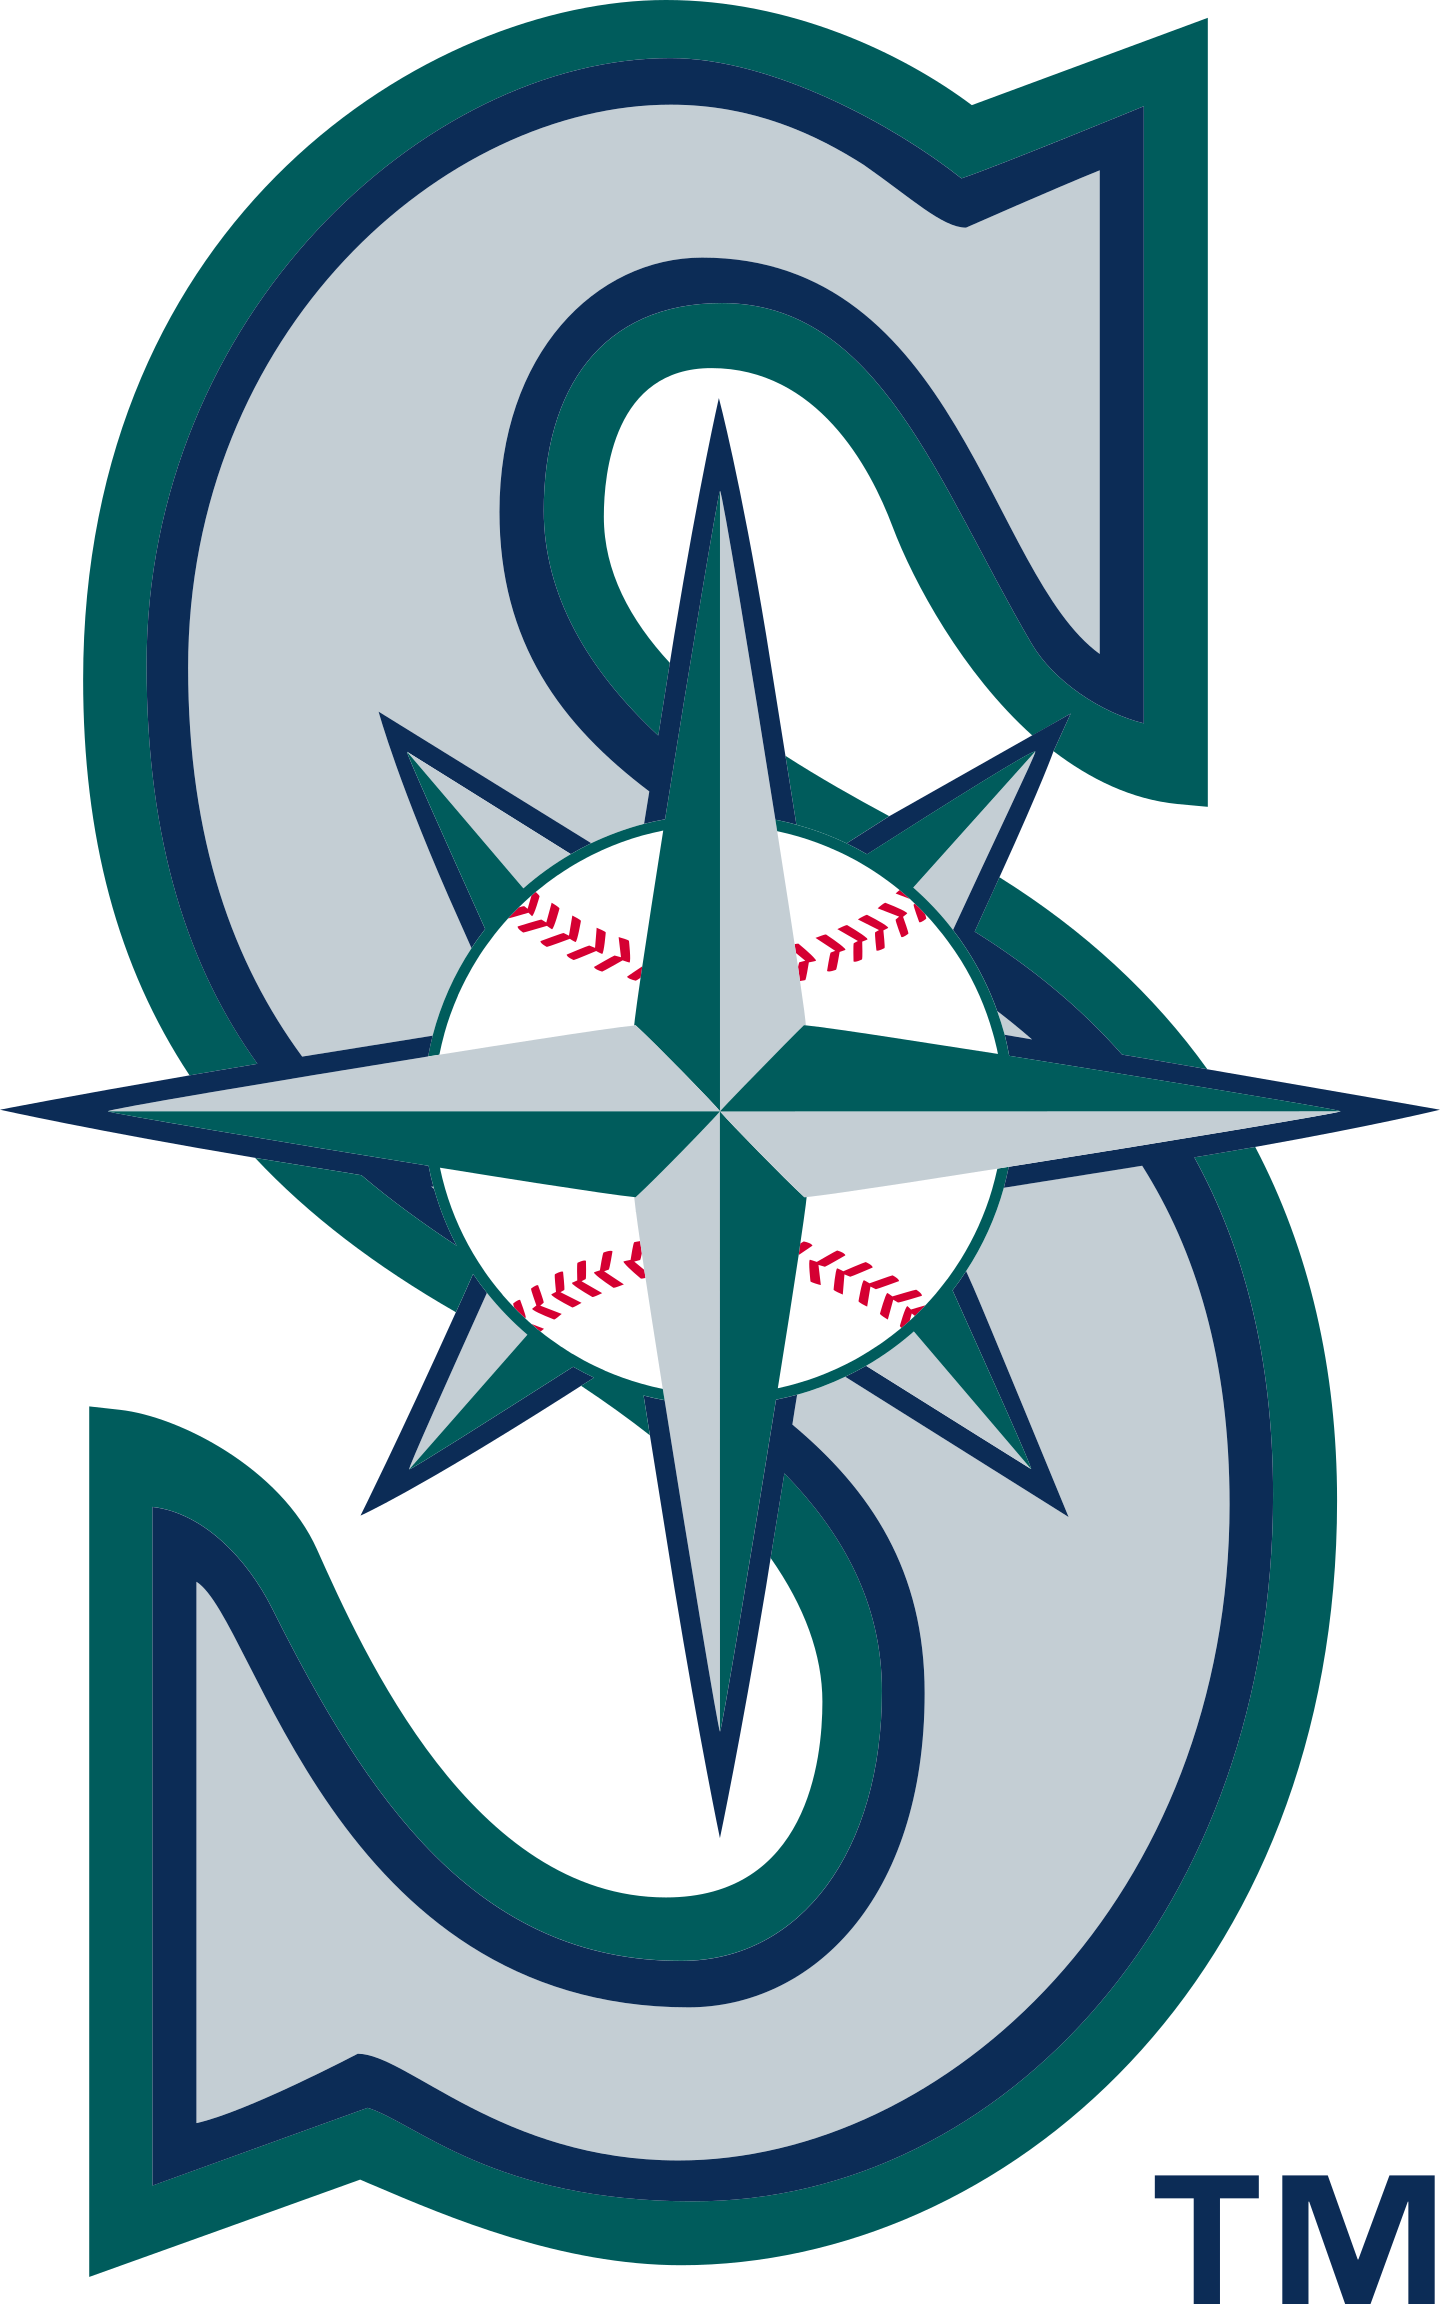 seattle mariners logo 2 - Seattle Mariners Logo